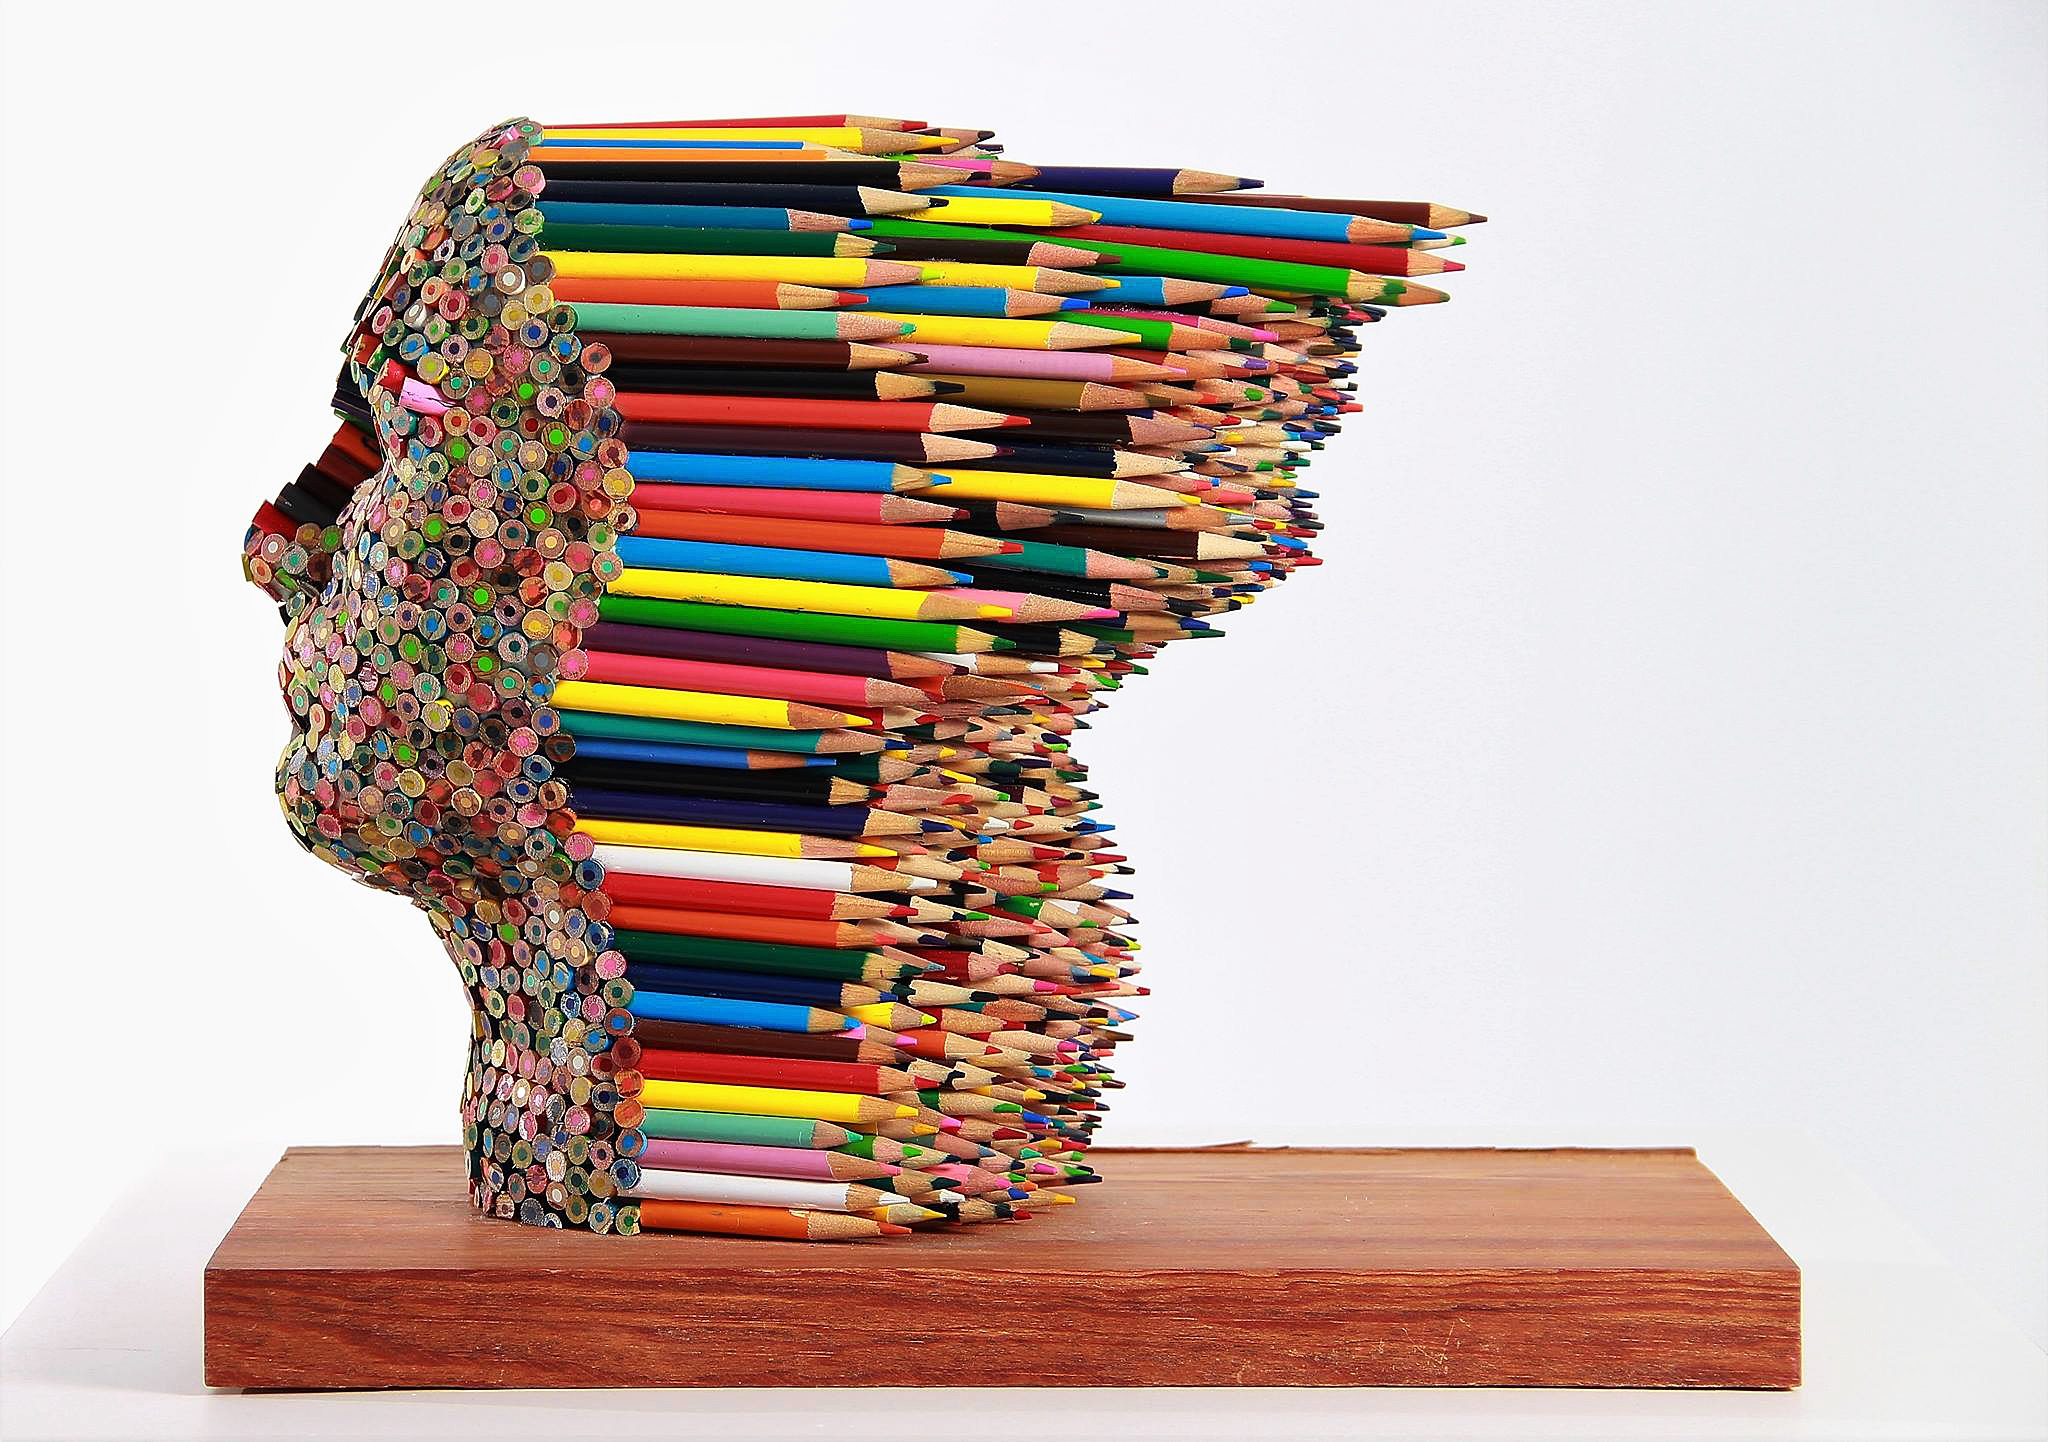 Molly Gambardella , Color blind Sculpture #artpeople